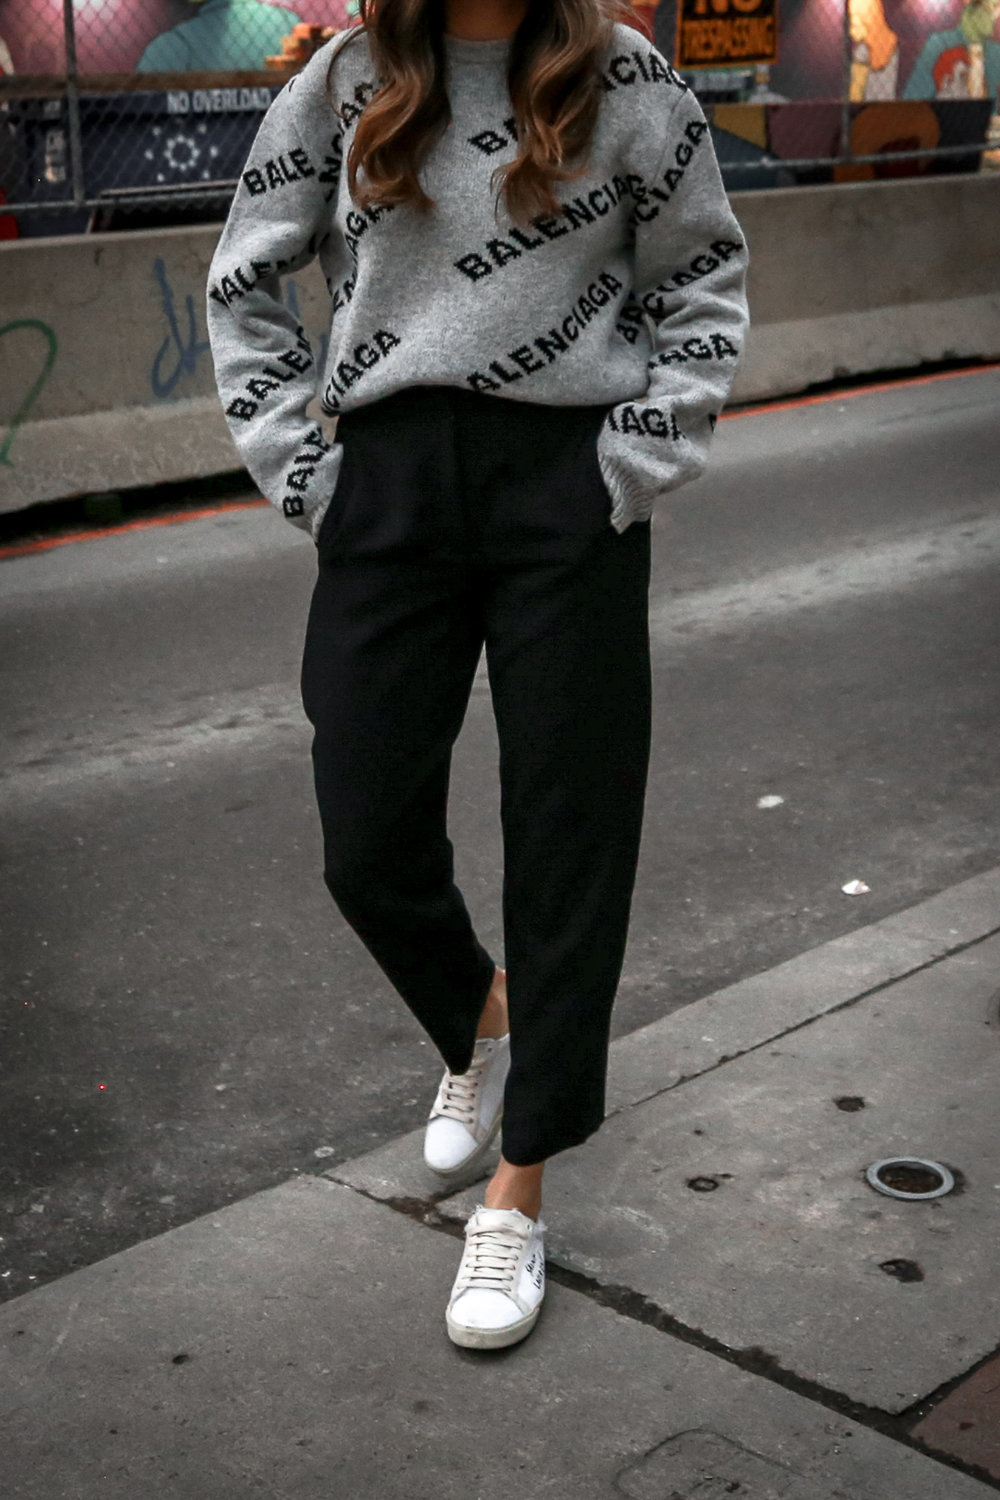 Nathalie Martin wearing Balenciaga cropped logo sweater, Aritzia black Jallade pant, Saint Laurent white canvas court sneakers, Aritzia navy pinstripe Stedman coat, neon green beanie, Bonlook Way sunglasses, street style, woahstyle.com_3921.jpg